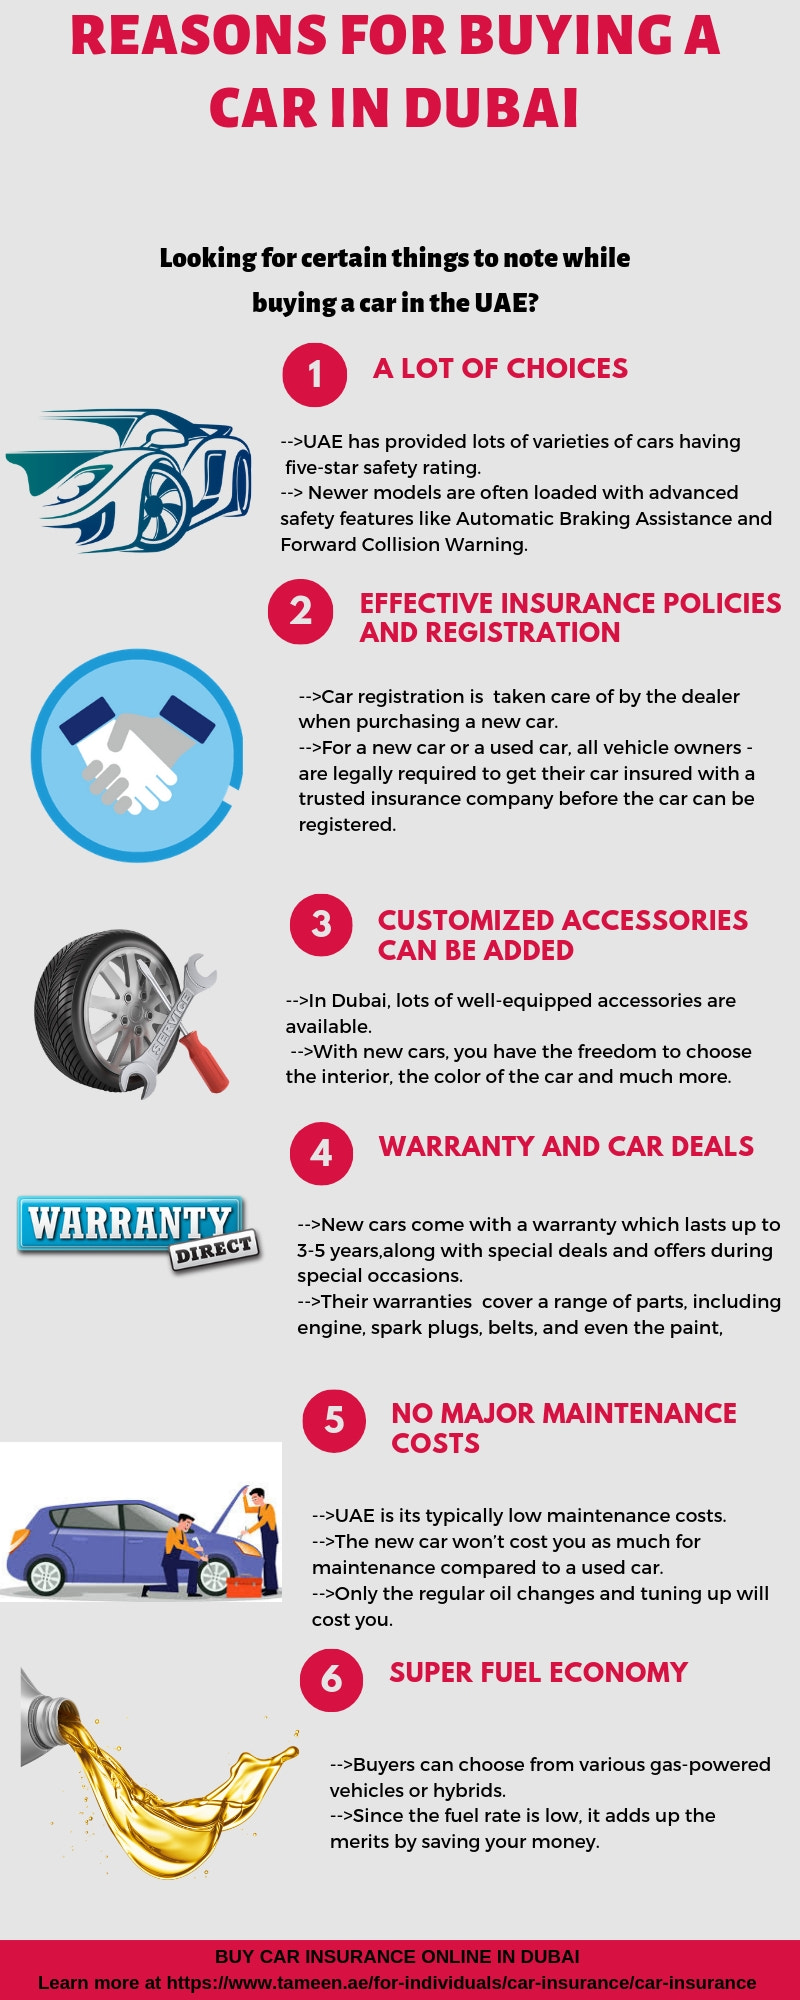 Reasons for buying a car in dubai